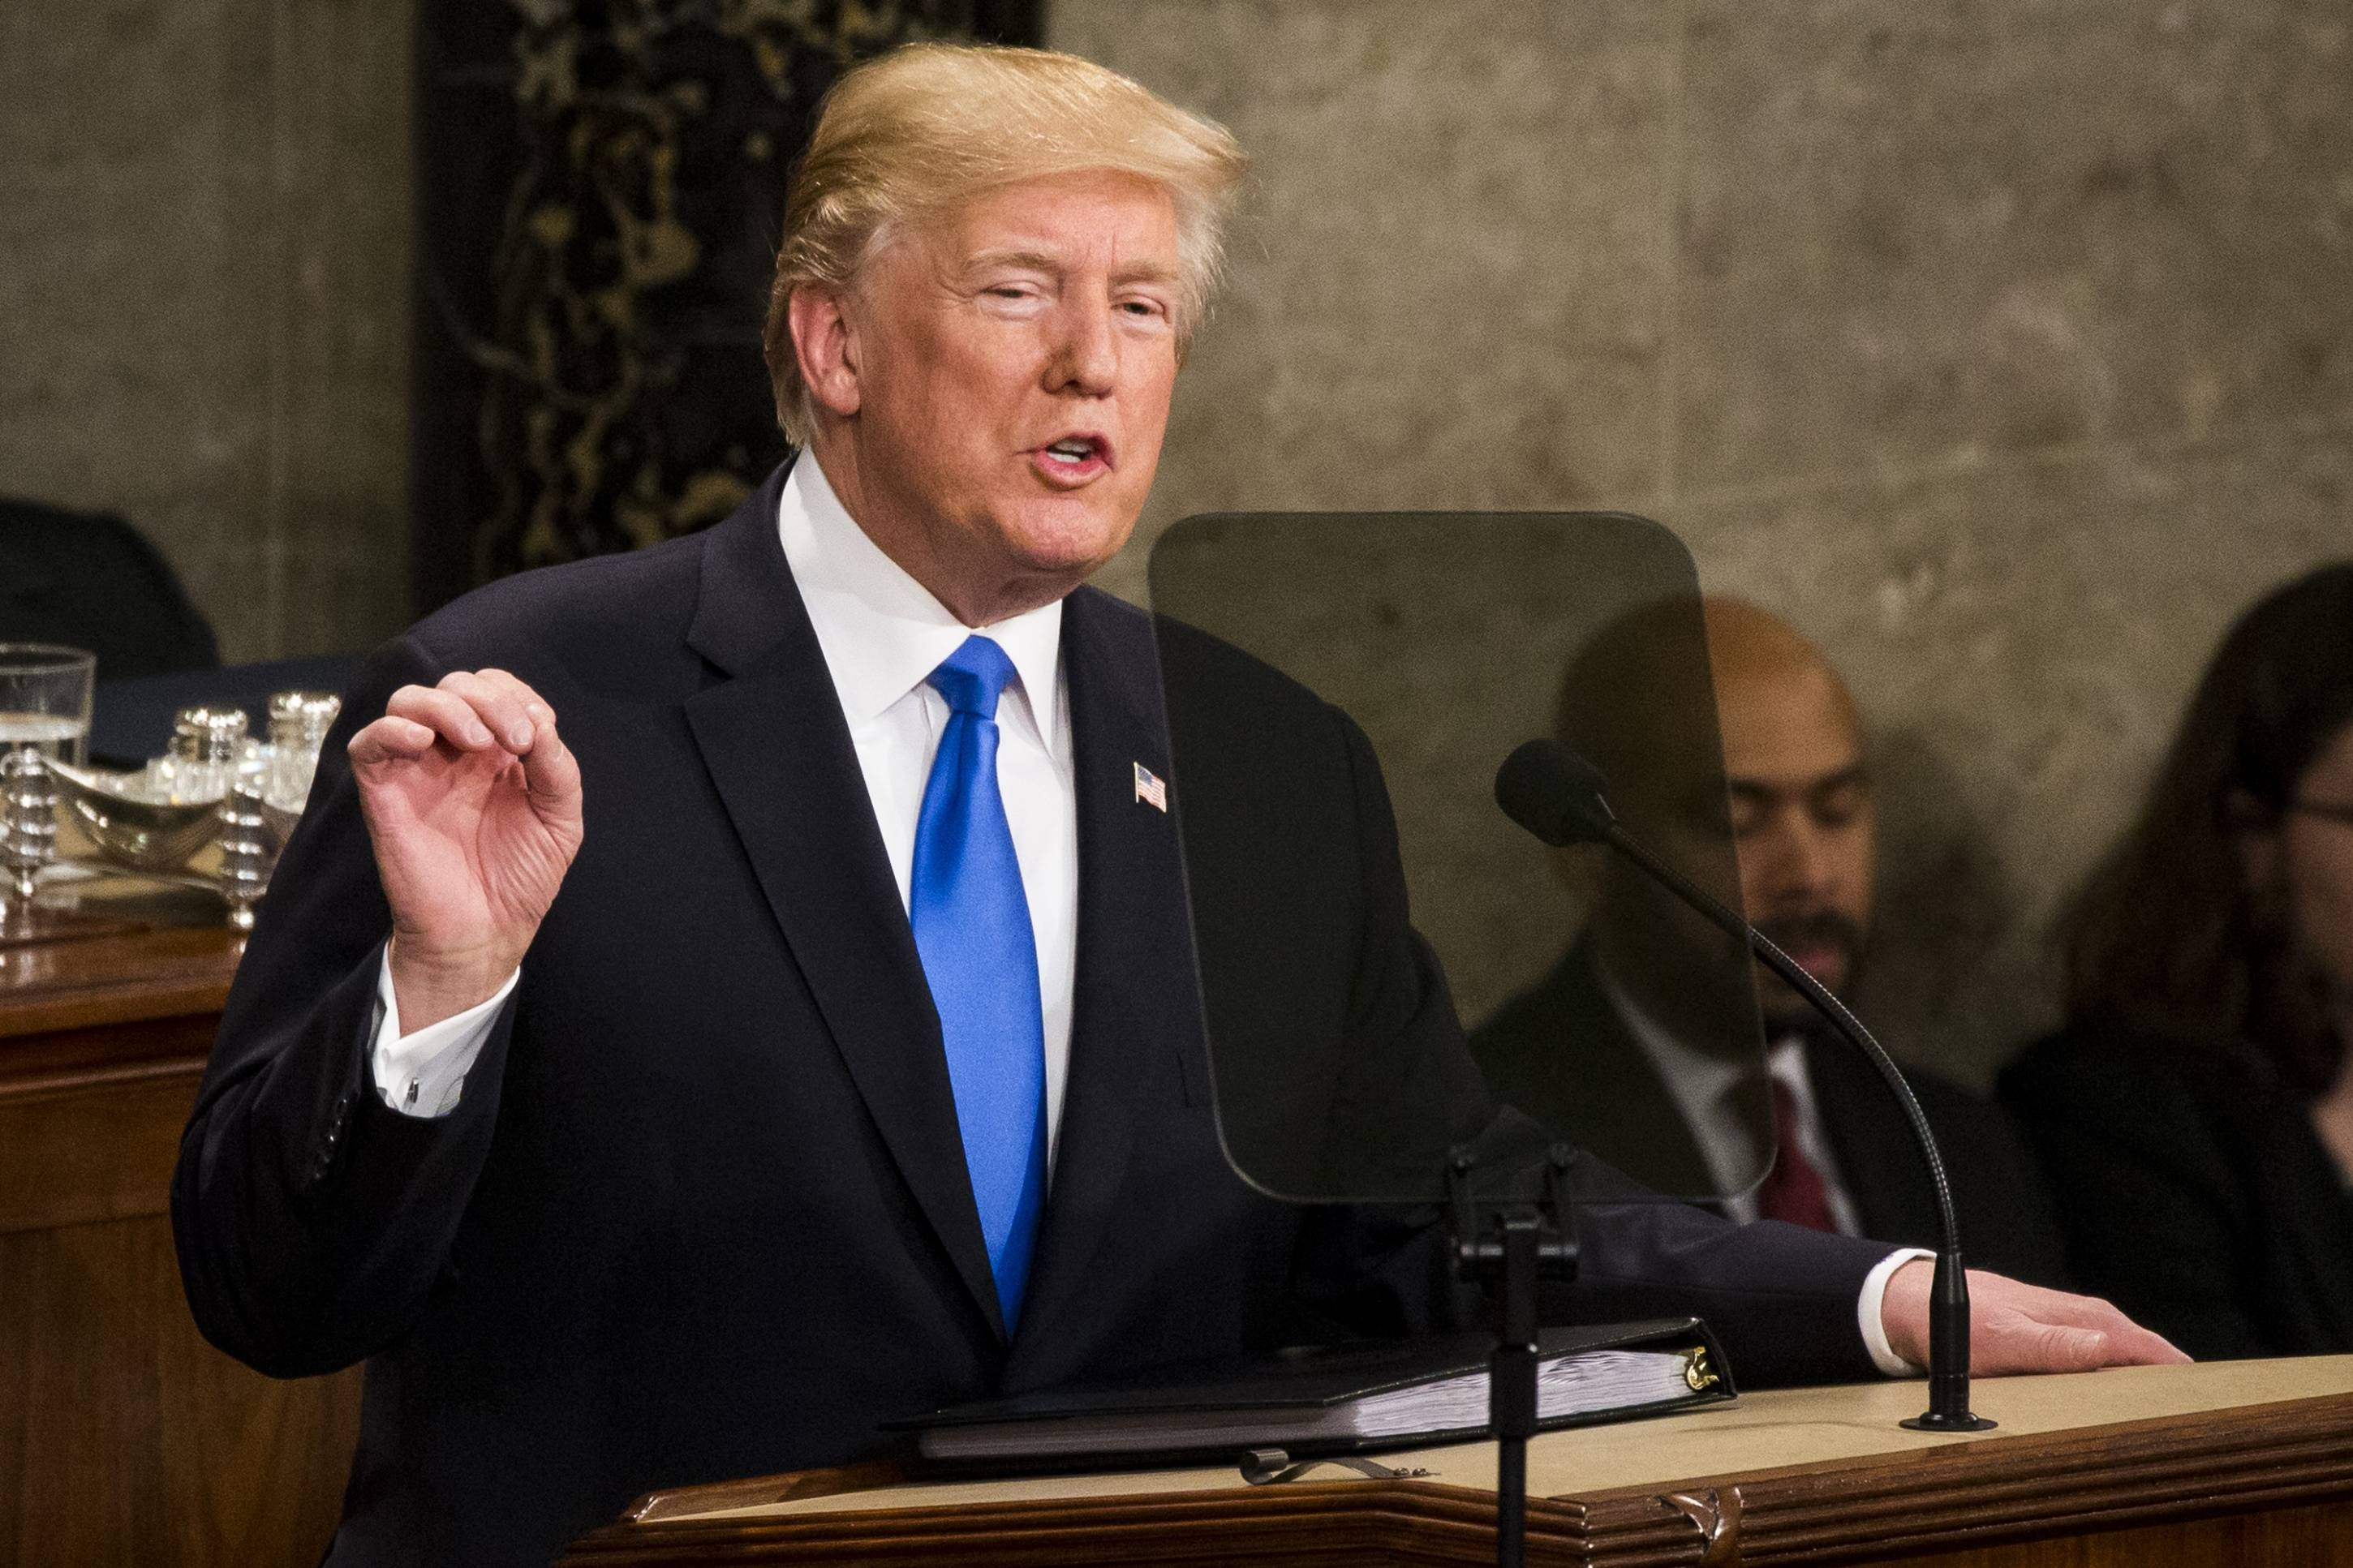 President Trump's First State of the Union Address